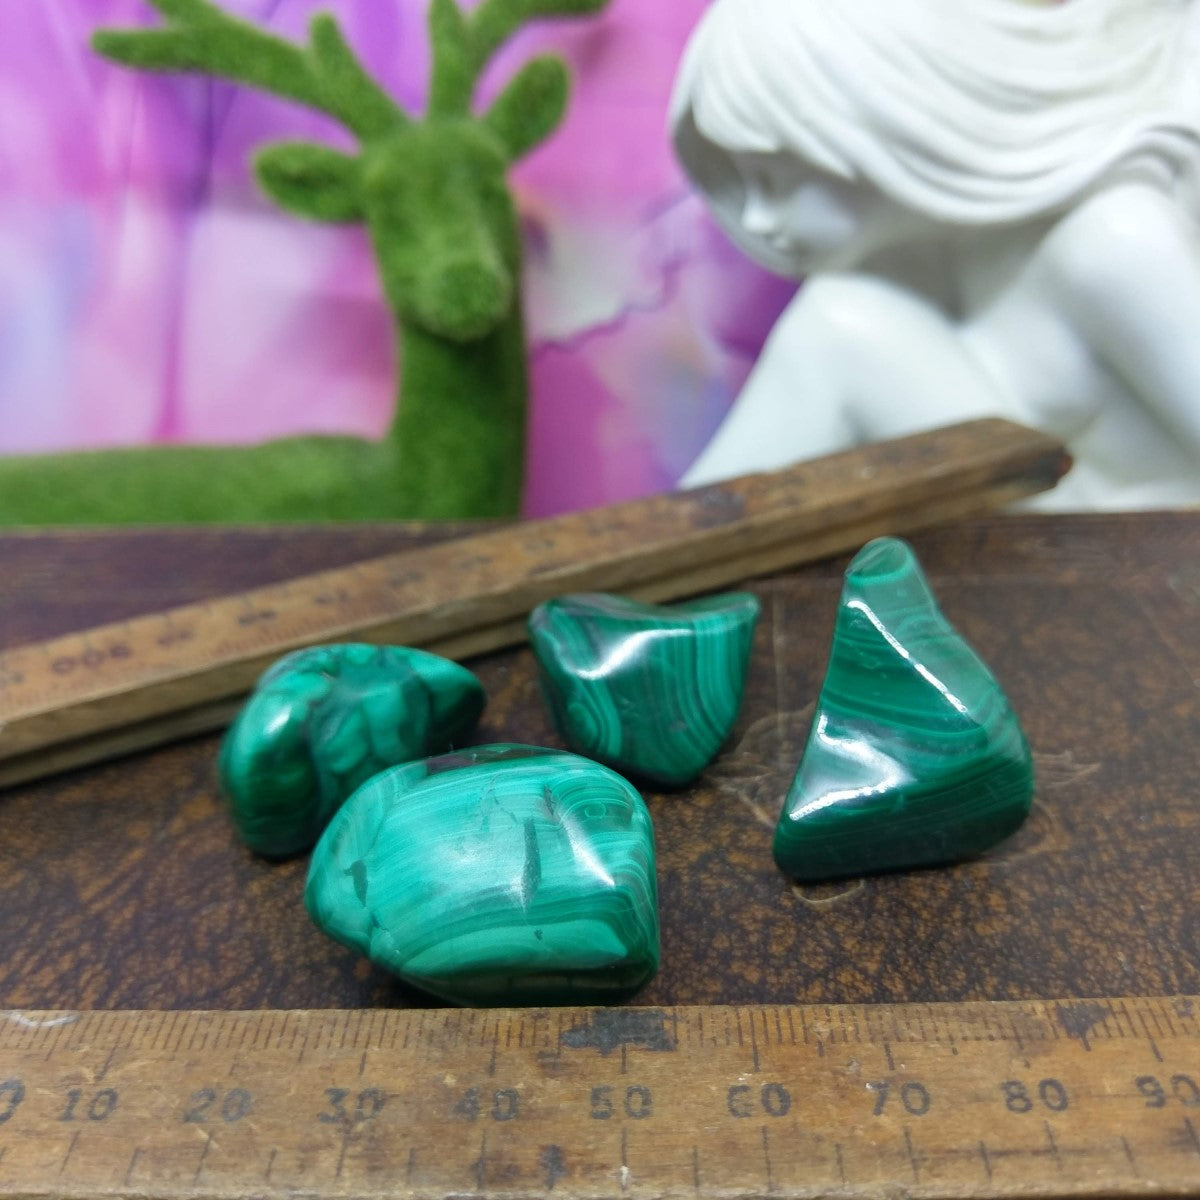 Malachite Tumble Stones - Medium.